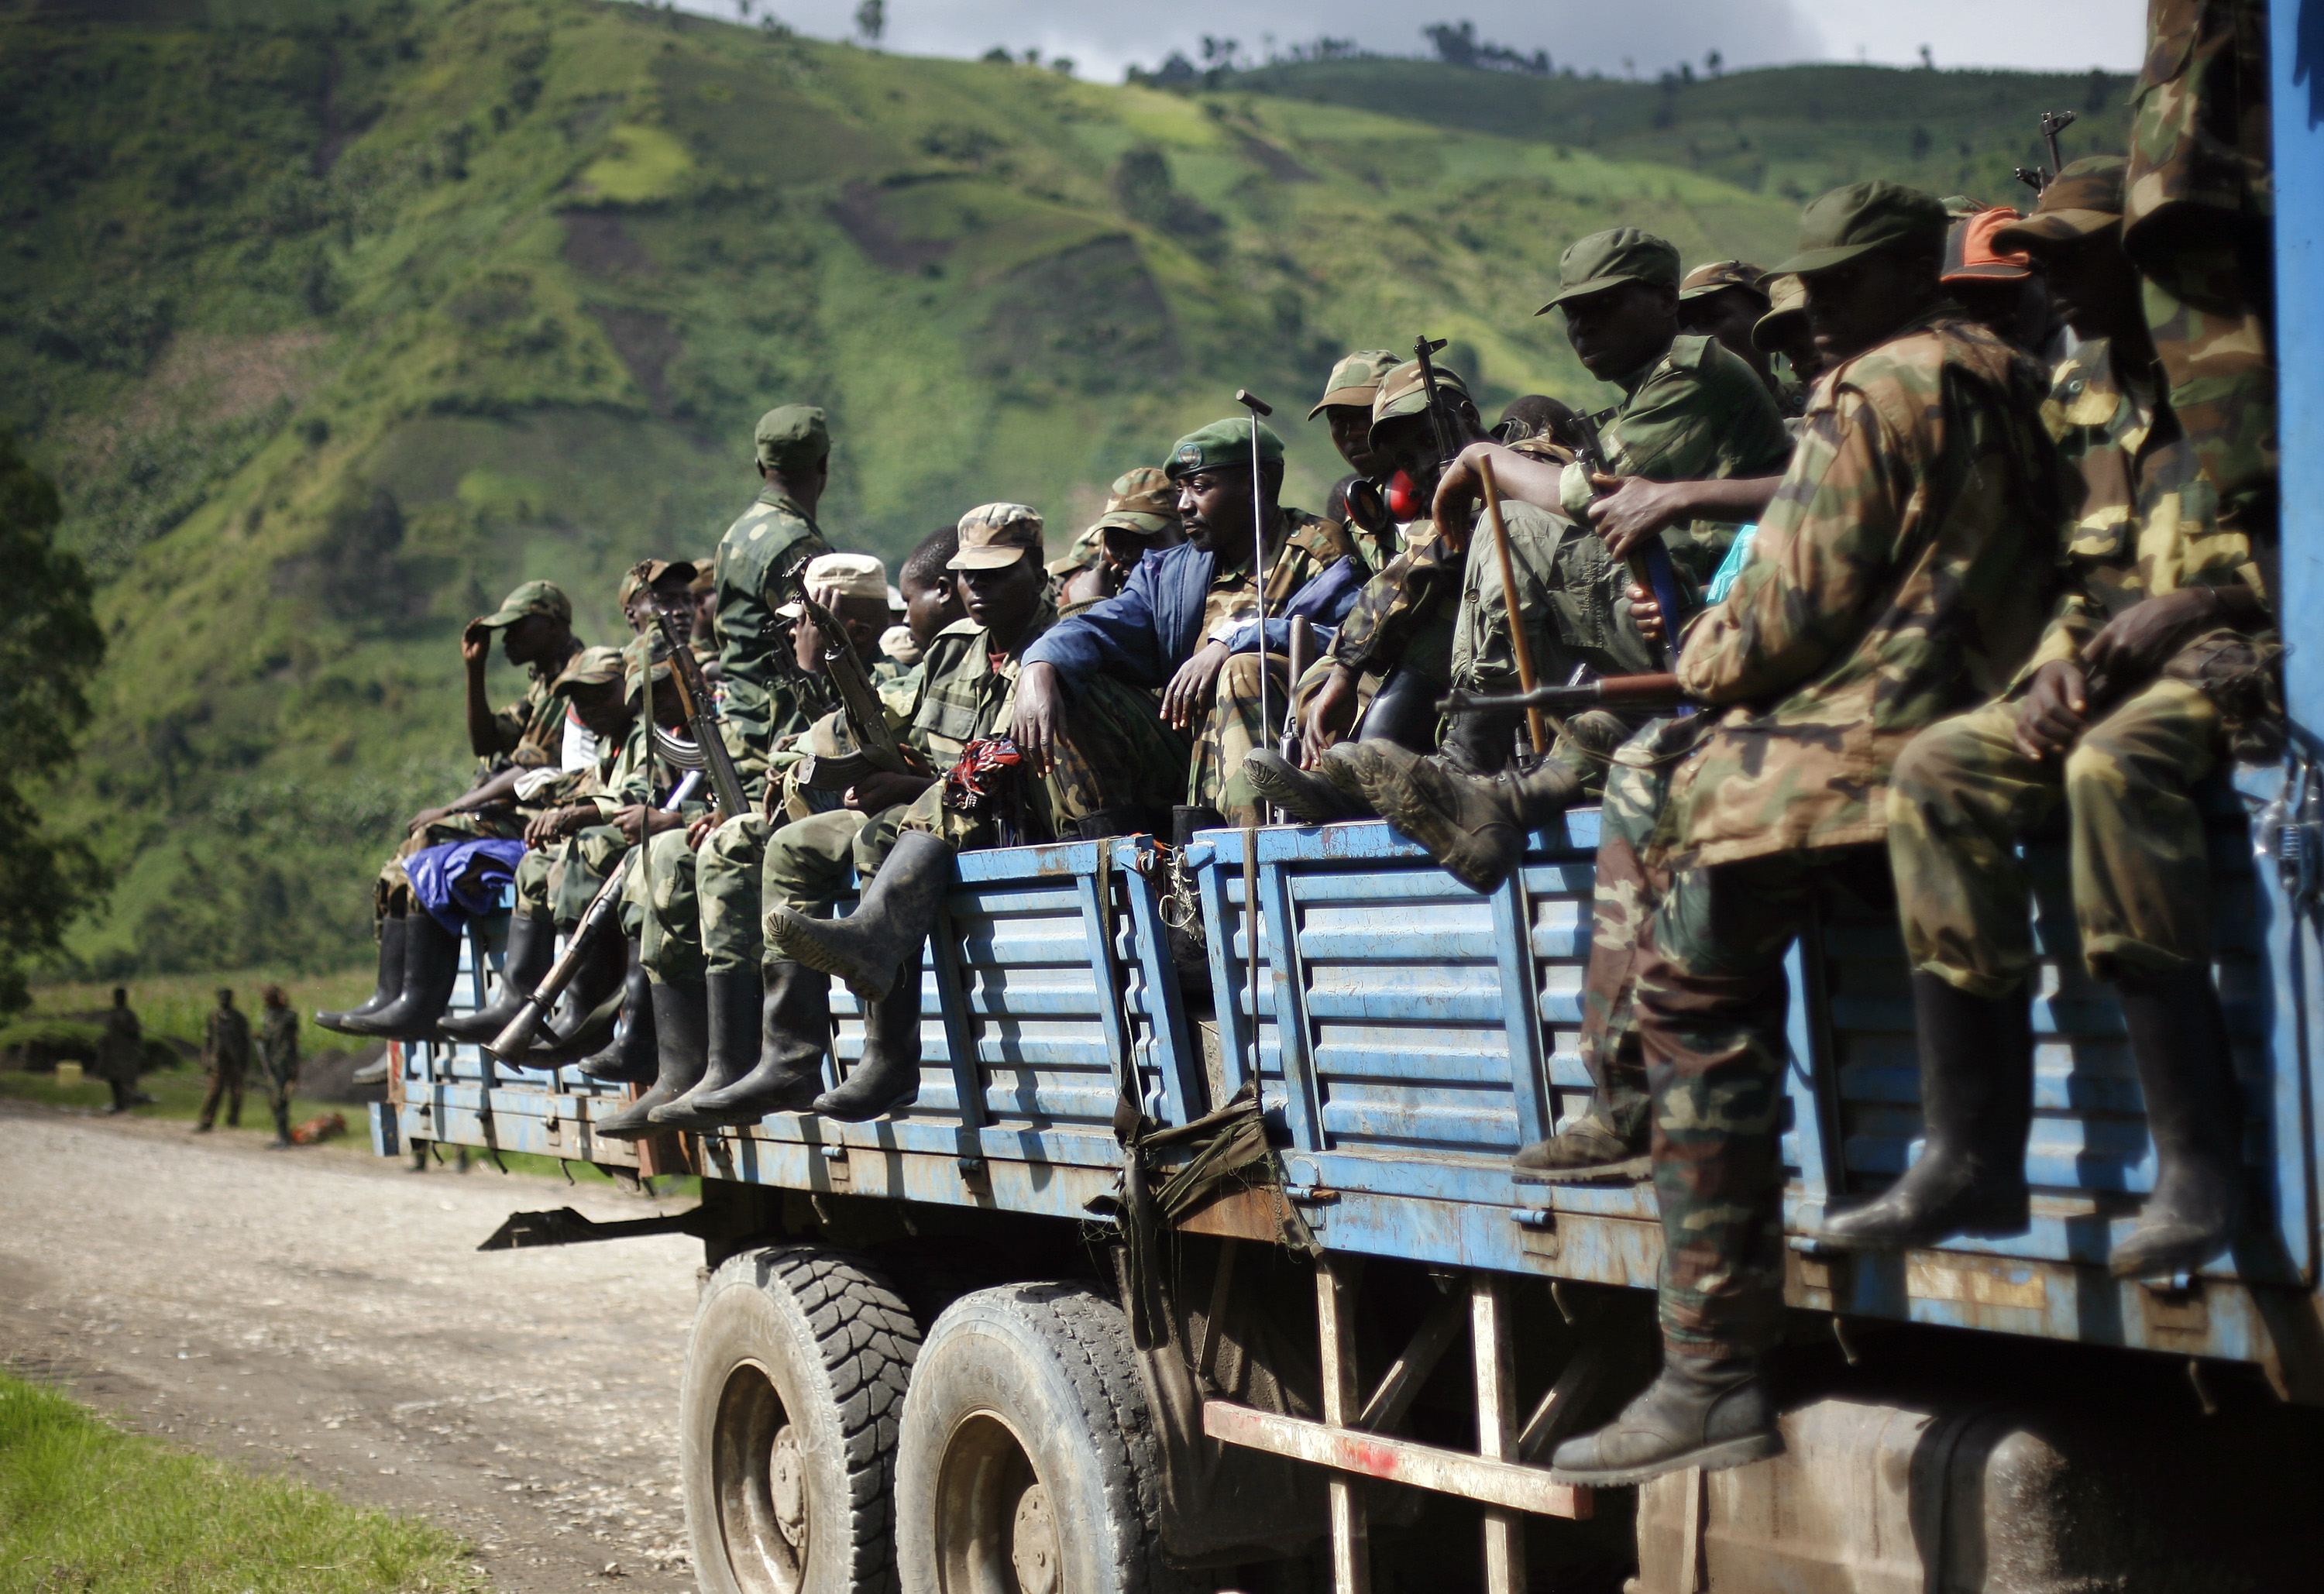 AllAfrica Op-ed: New Urgency to Talks With M23 Rebels